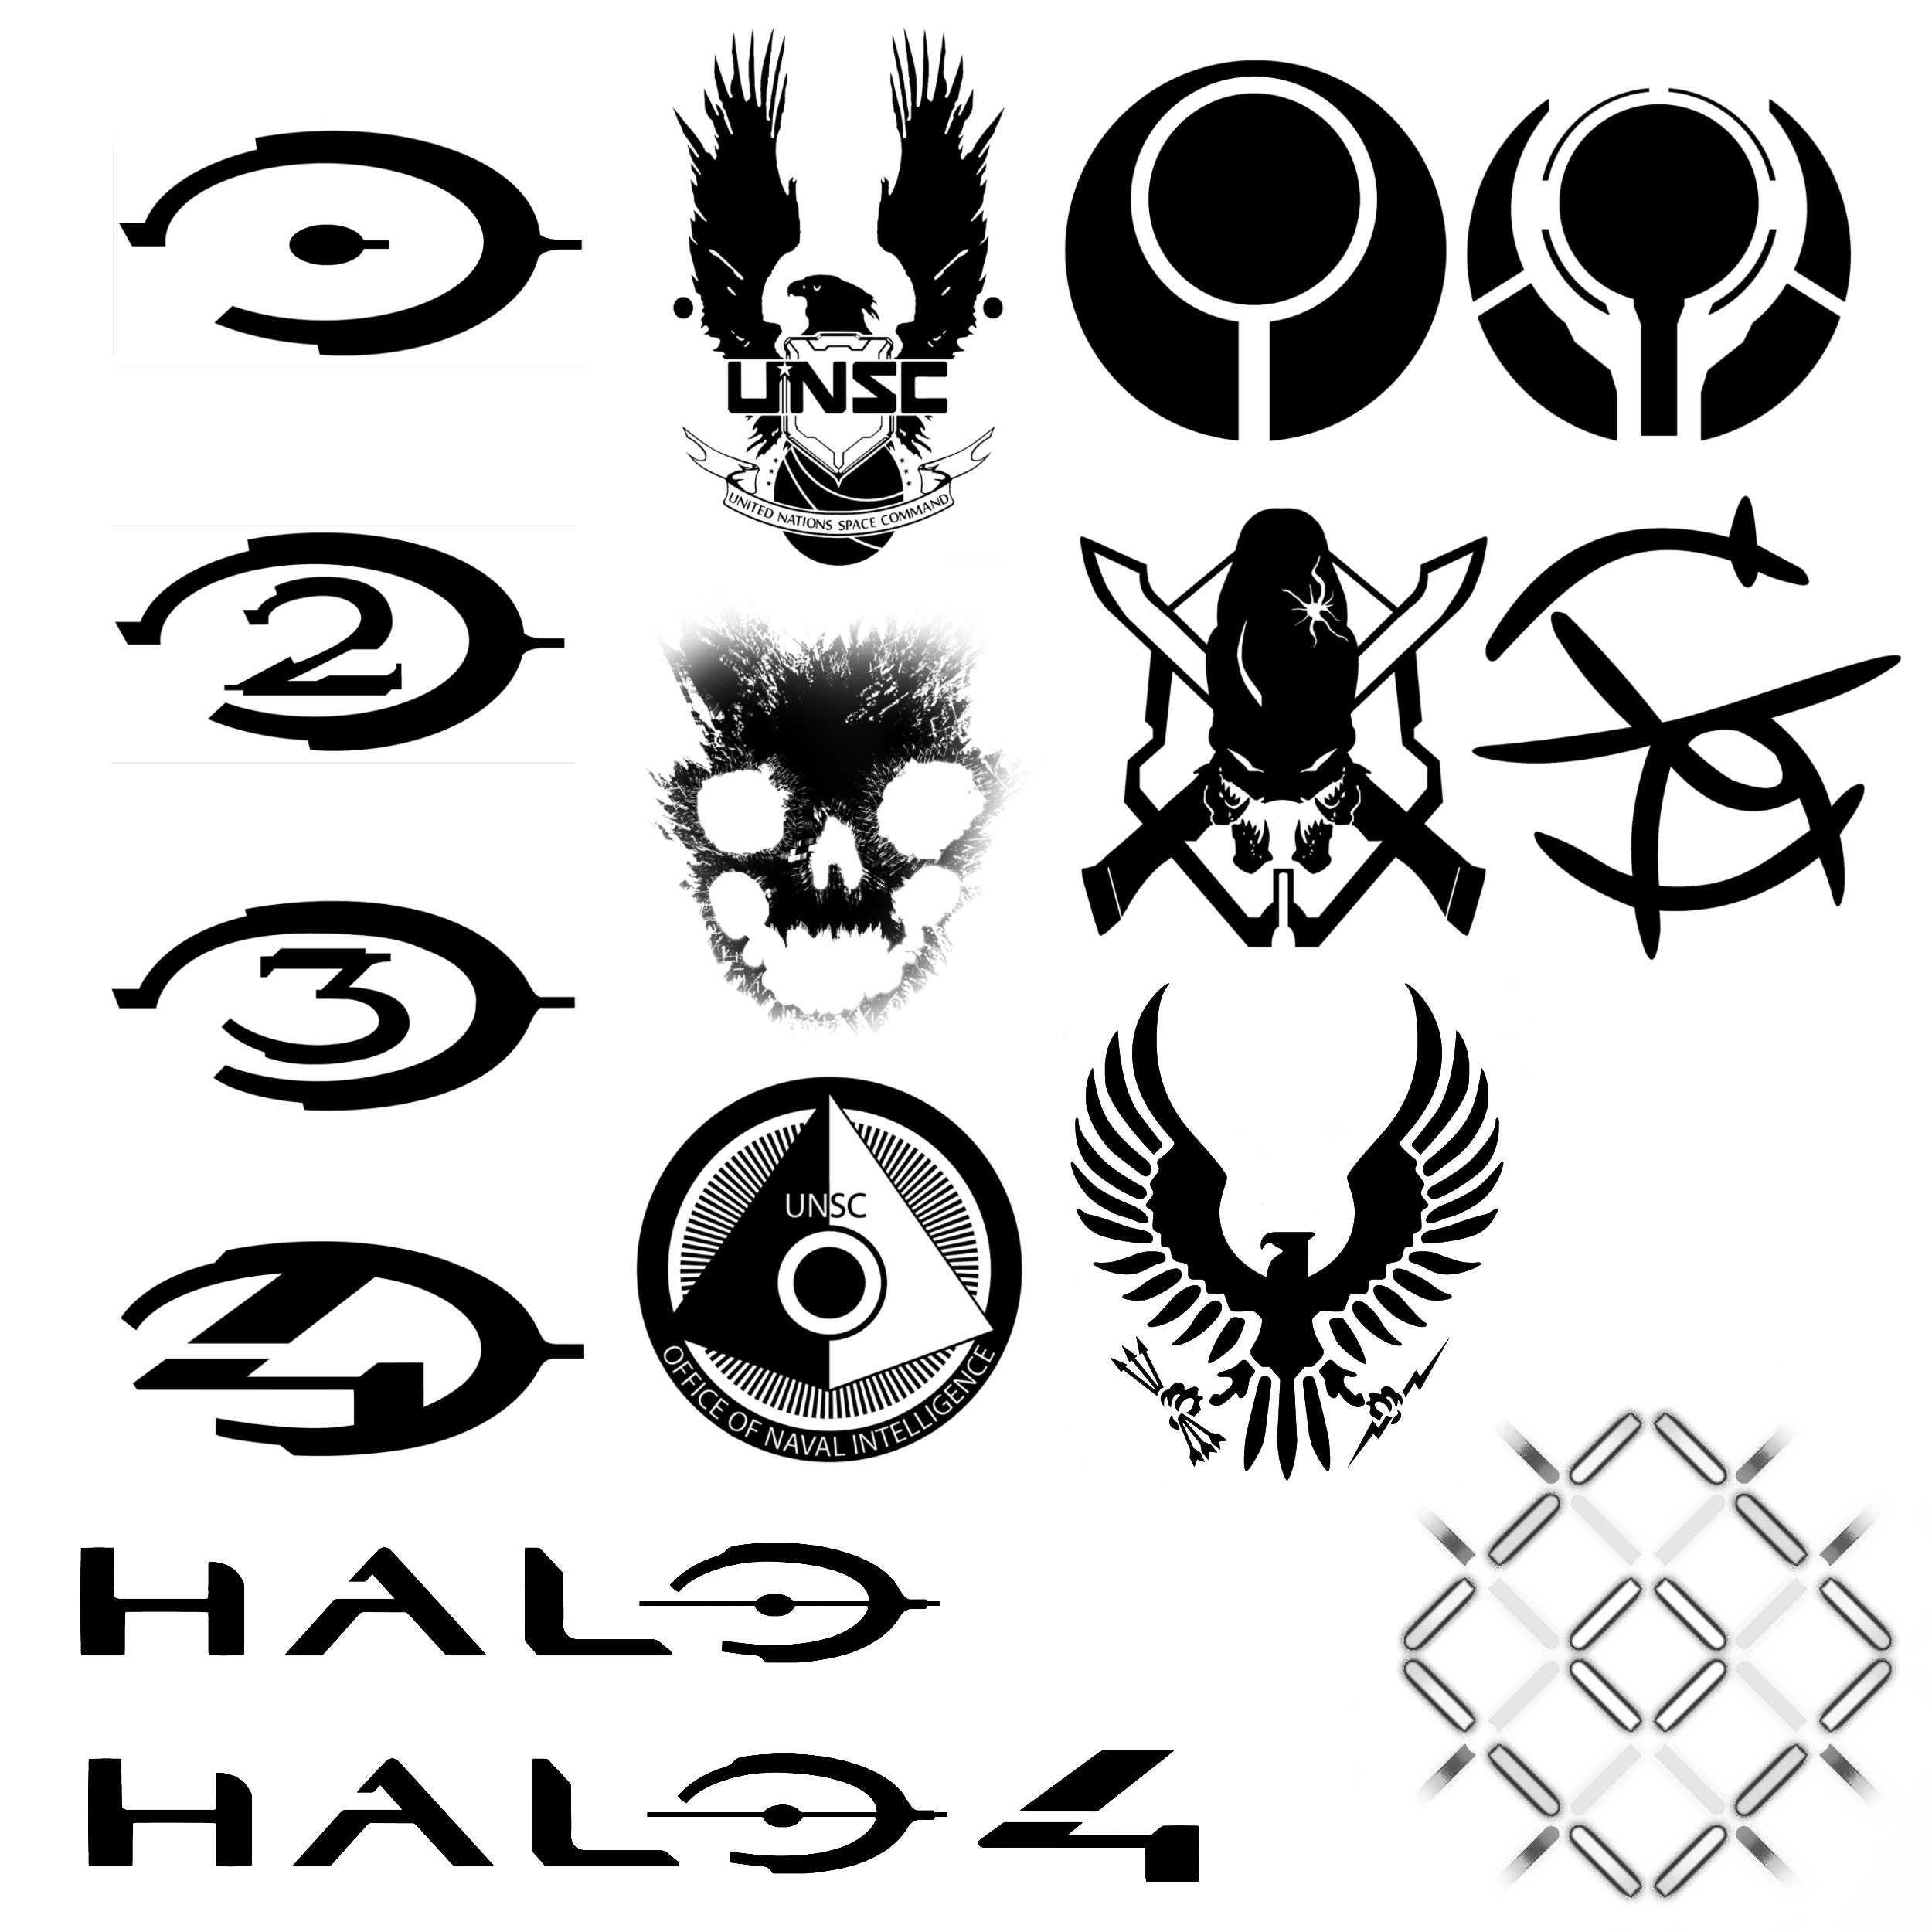 2500x2500 15 Hi Def Halo Themed Brushes By Nick004